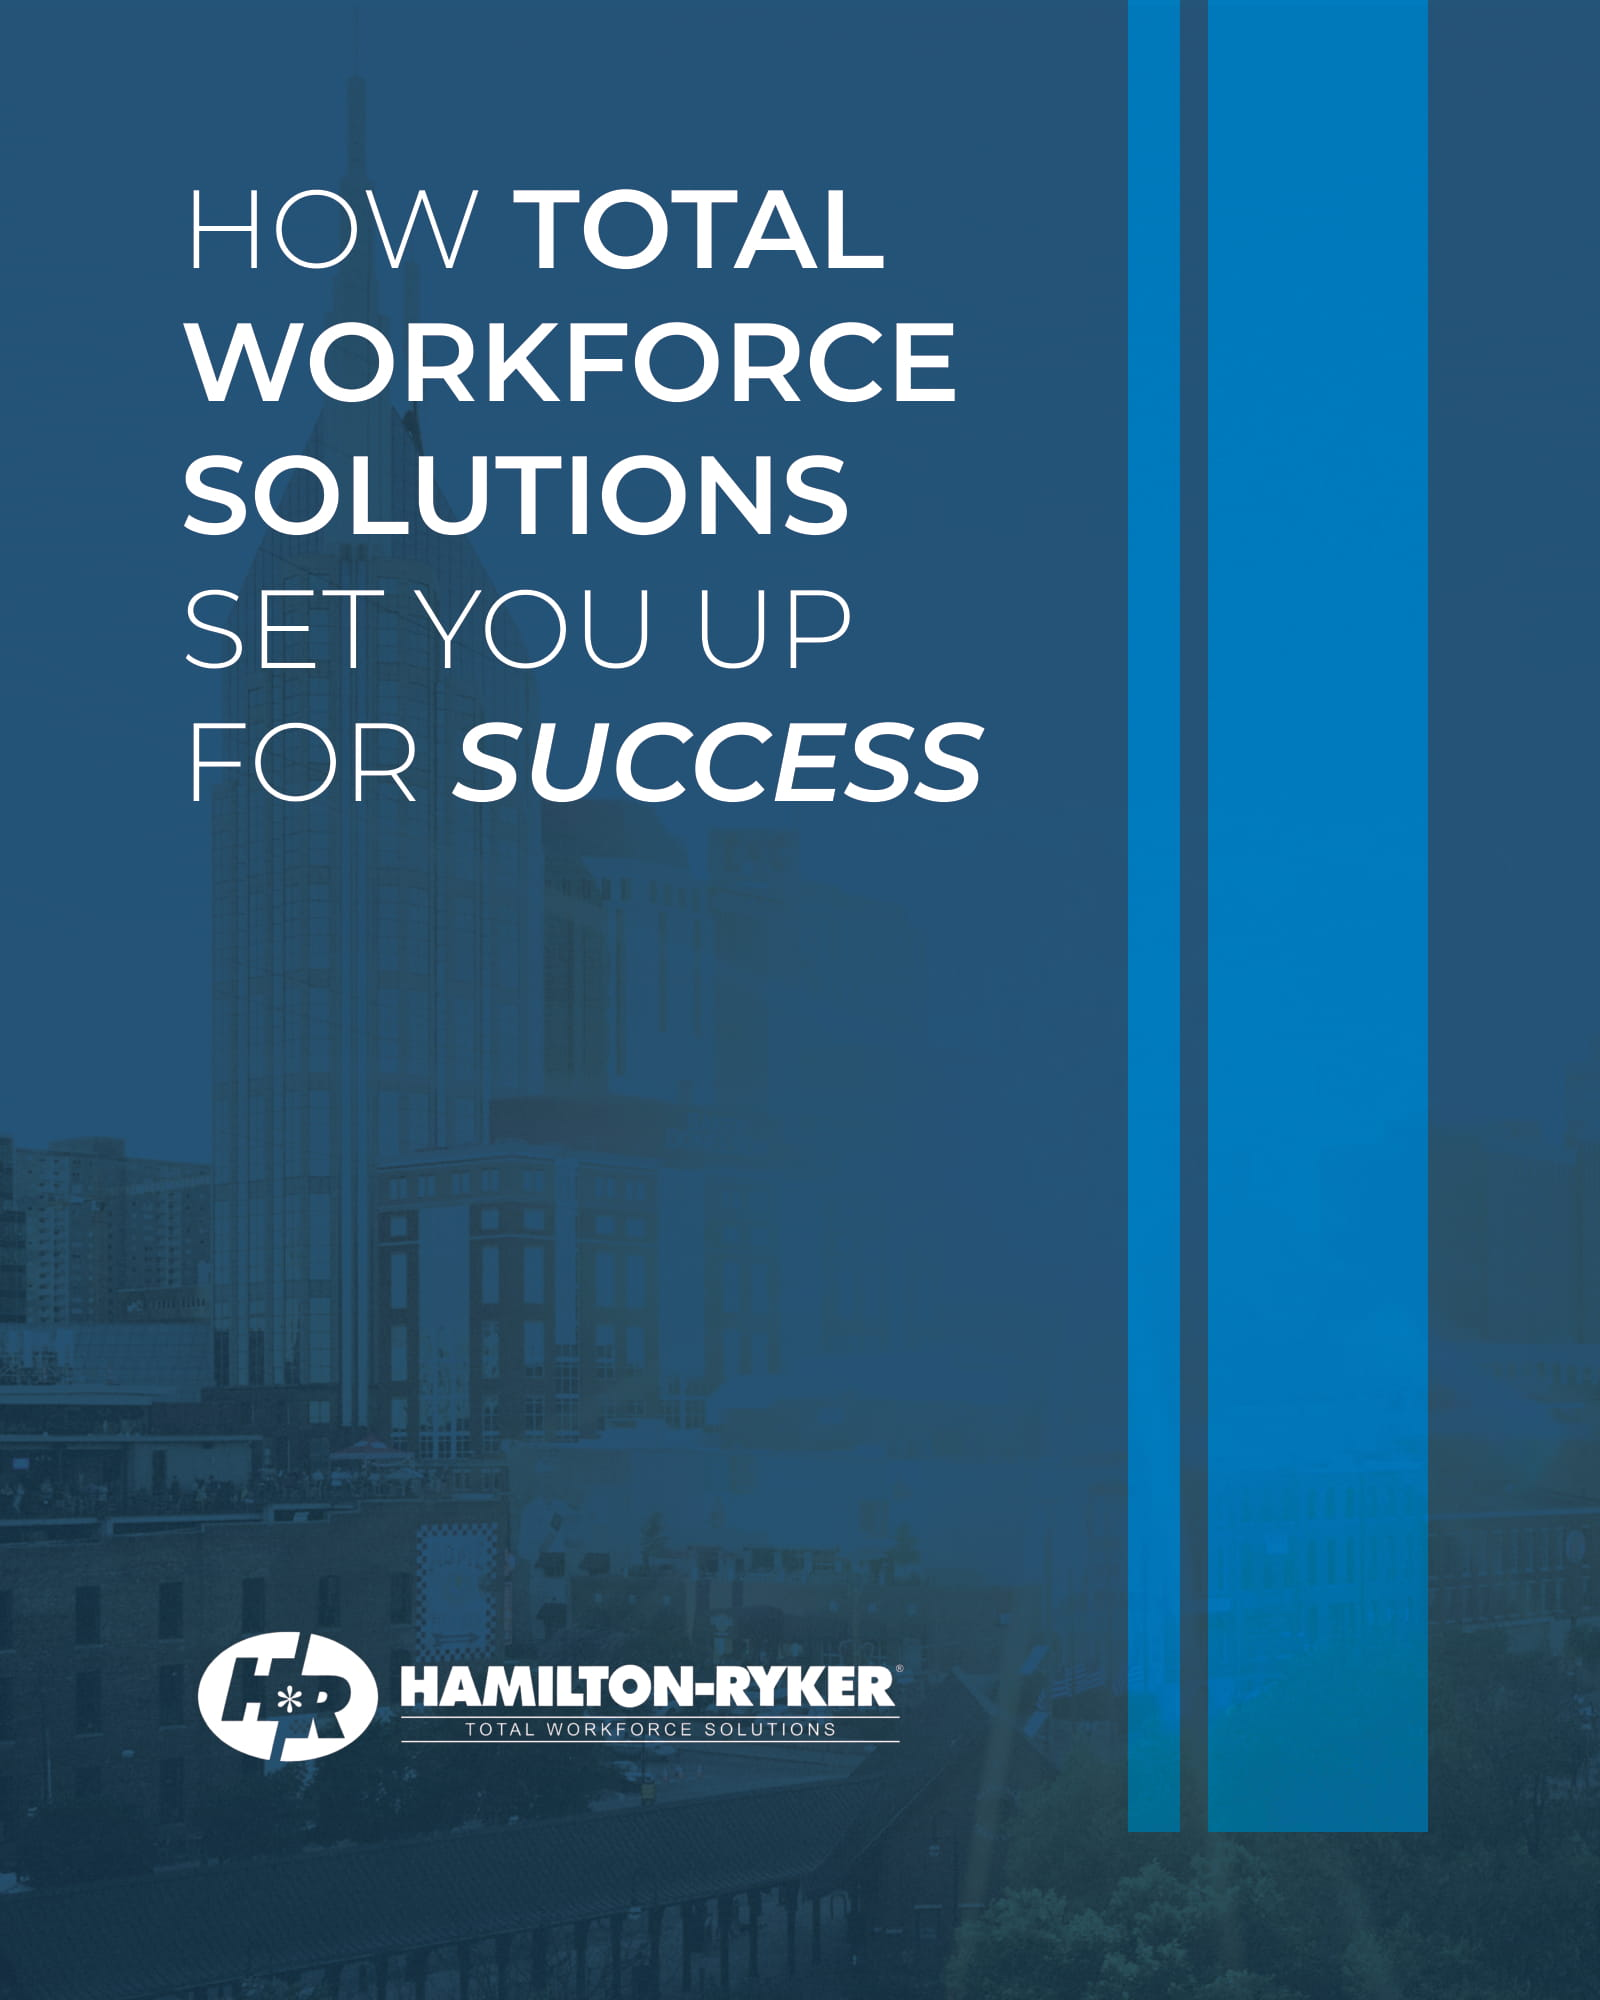 How Total Workforce Development Solutions book will set you up for success, by Hamilton Ryker staffing agency